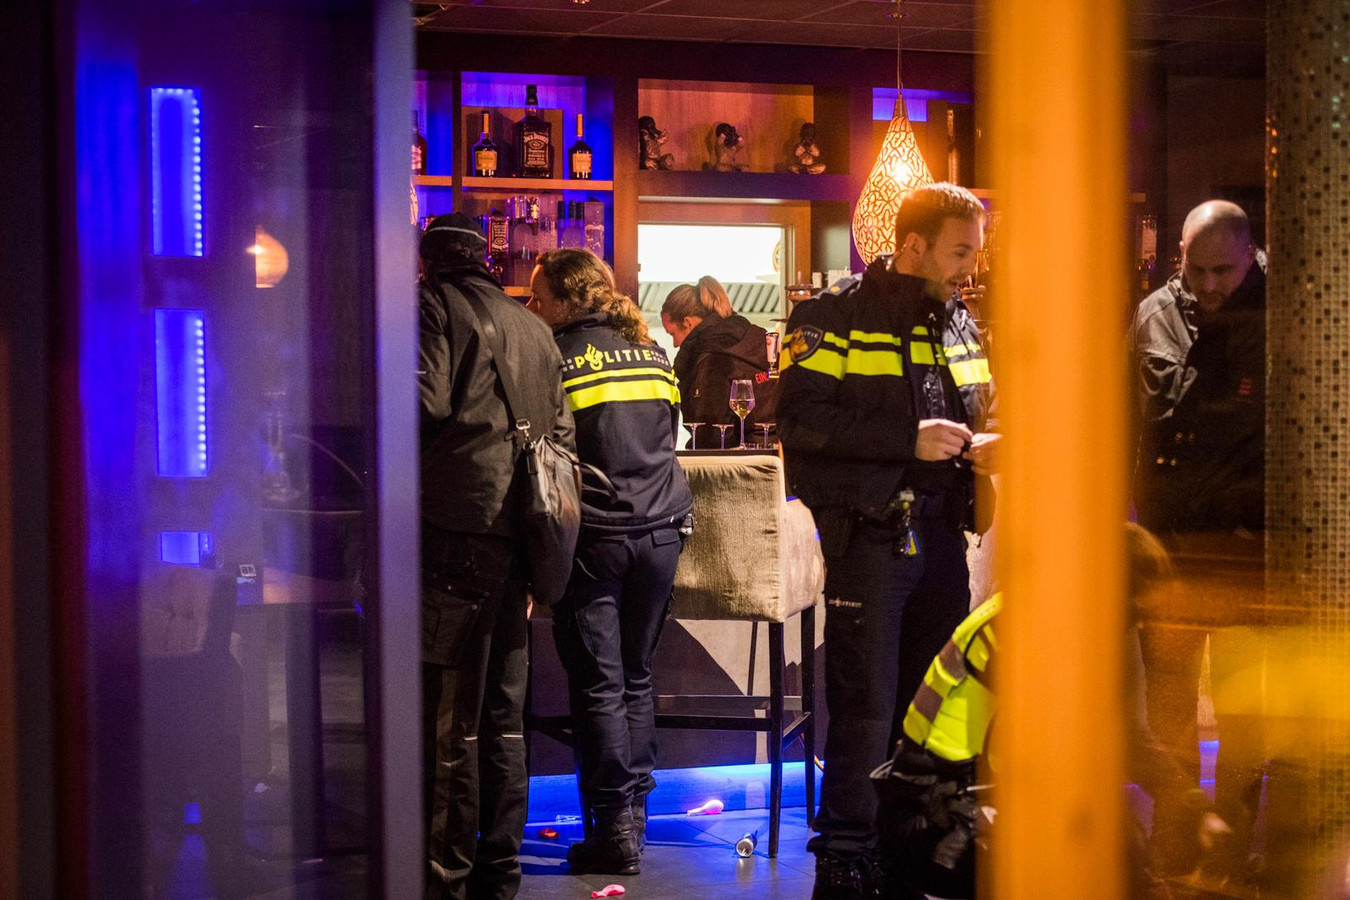 Inval in shishalounge Eindhoven